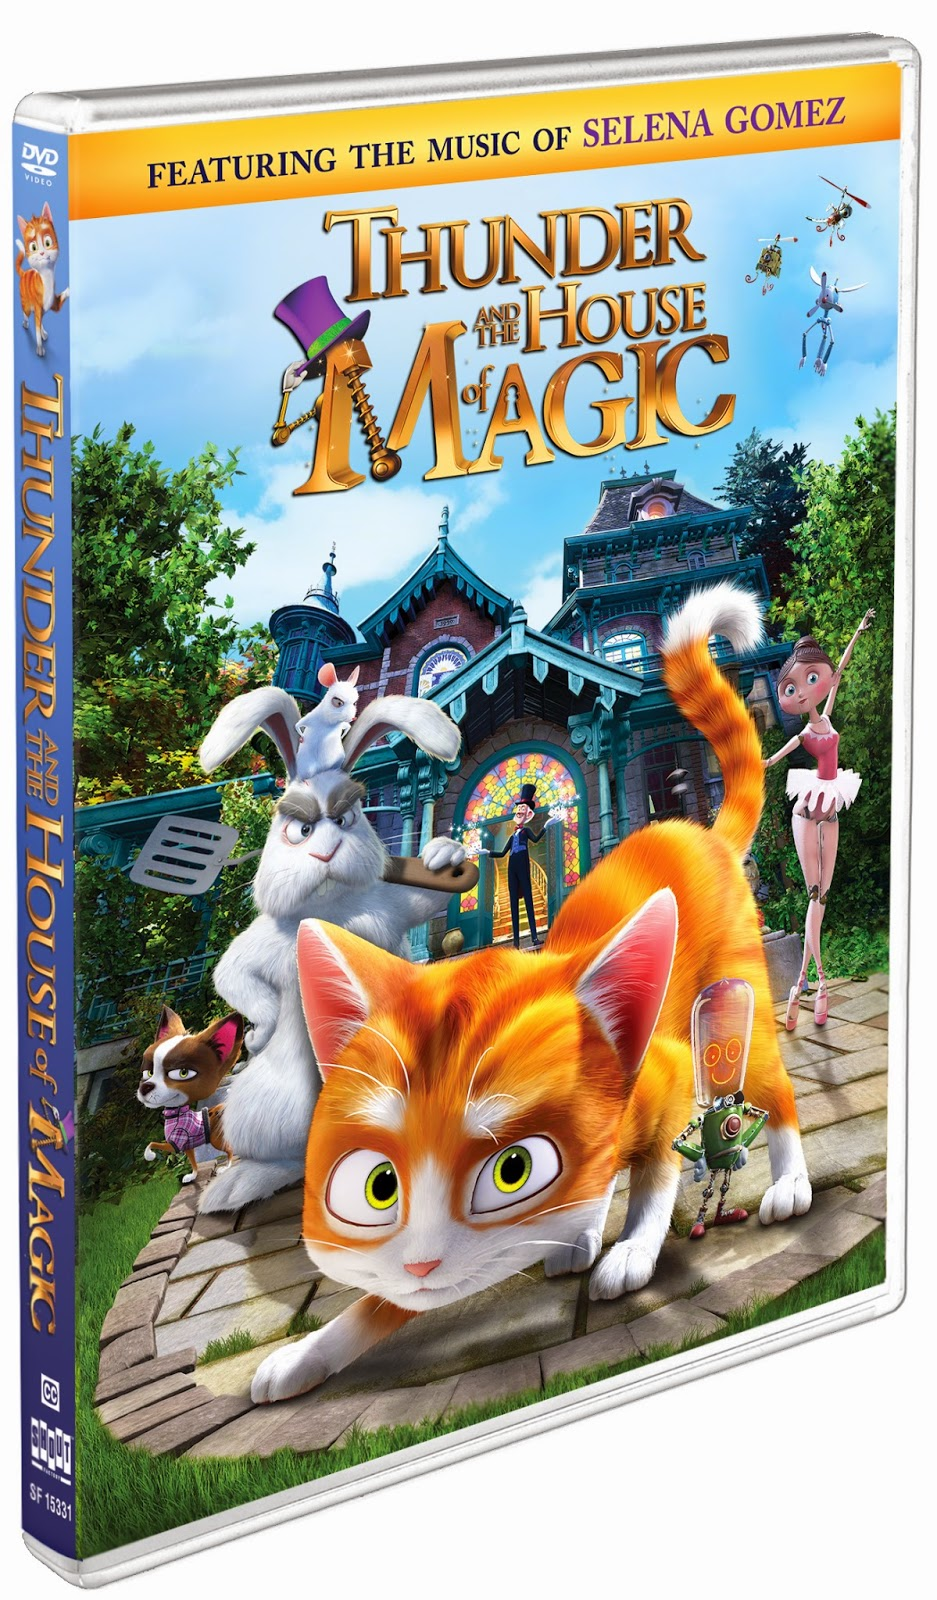 DVD Review - Thunder and the House of Magic